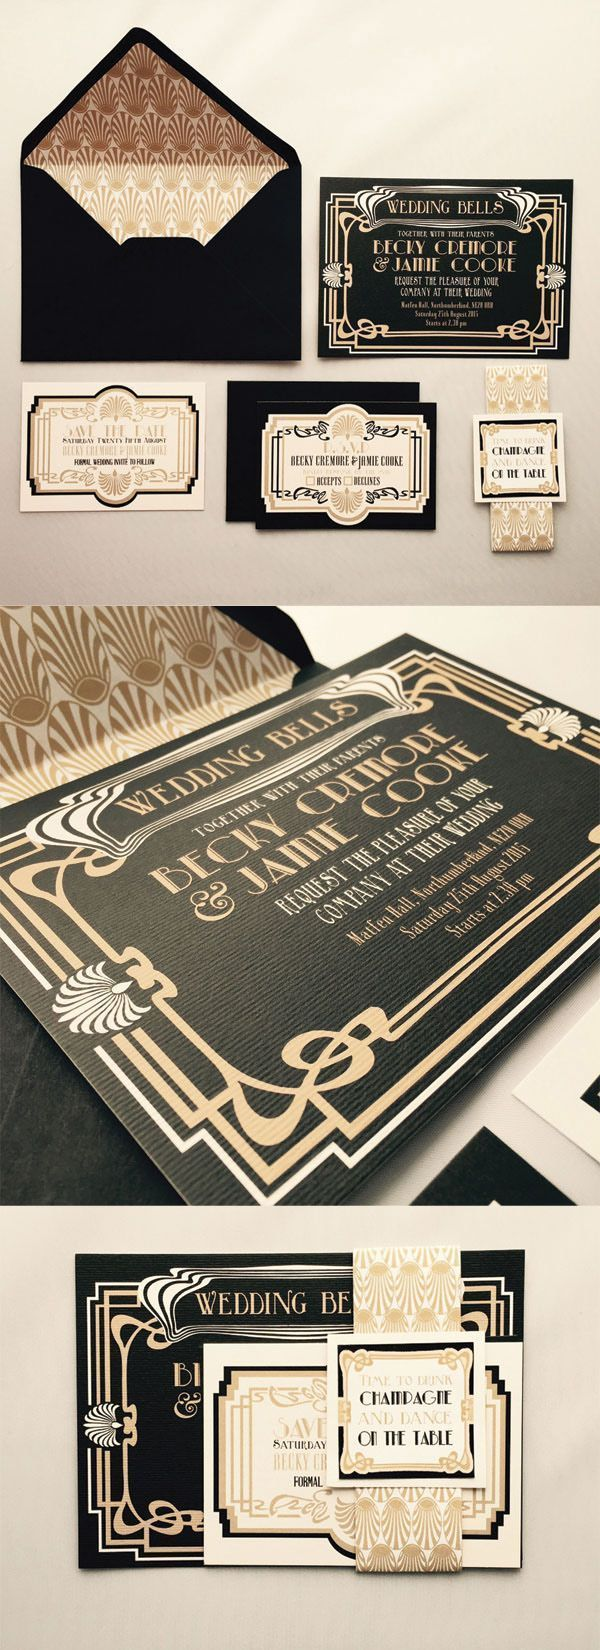 These Pretty Black And Gold 1920s Wedding Invitations Would Be Perfect For  A Great Gatsby Inspired Wedding. Includes Invite, Save The Date, RSVP, ... Home Design Ideas